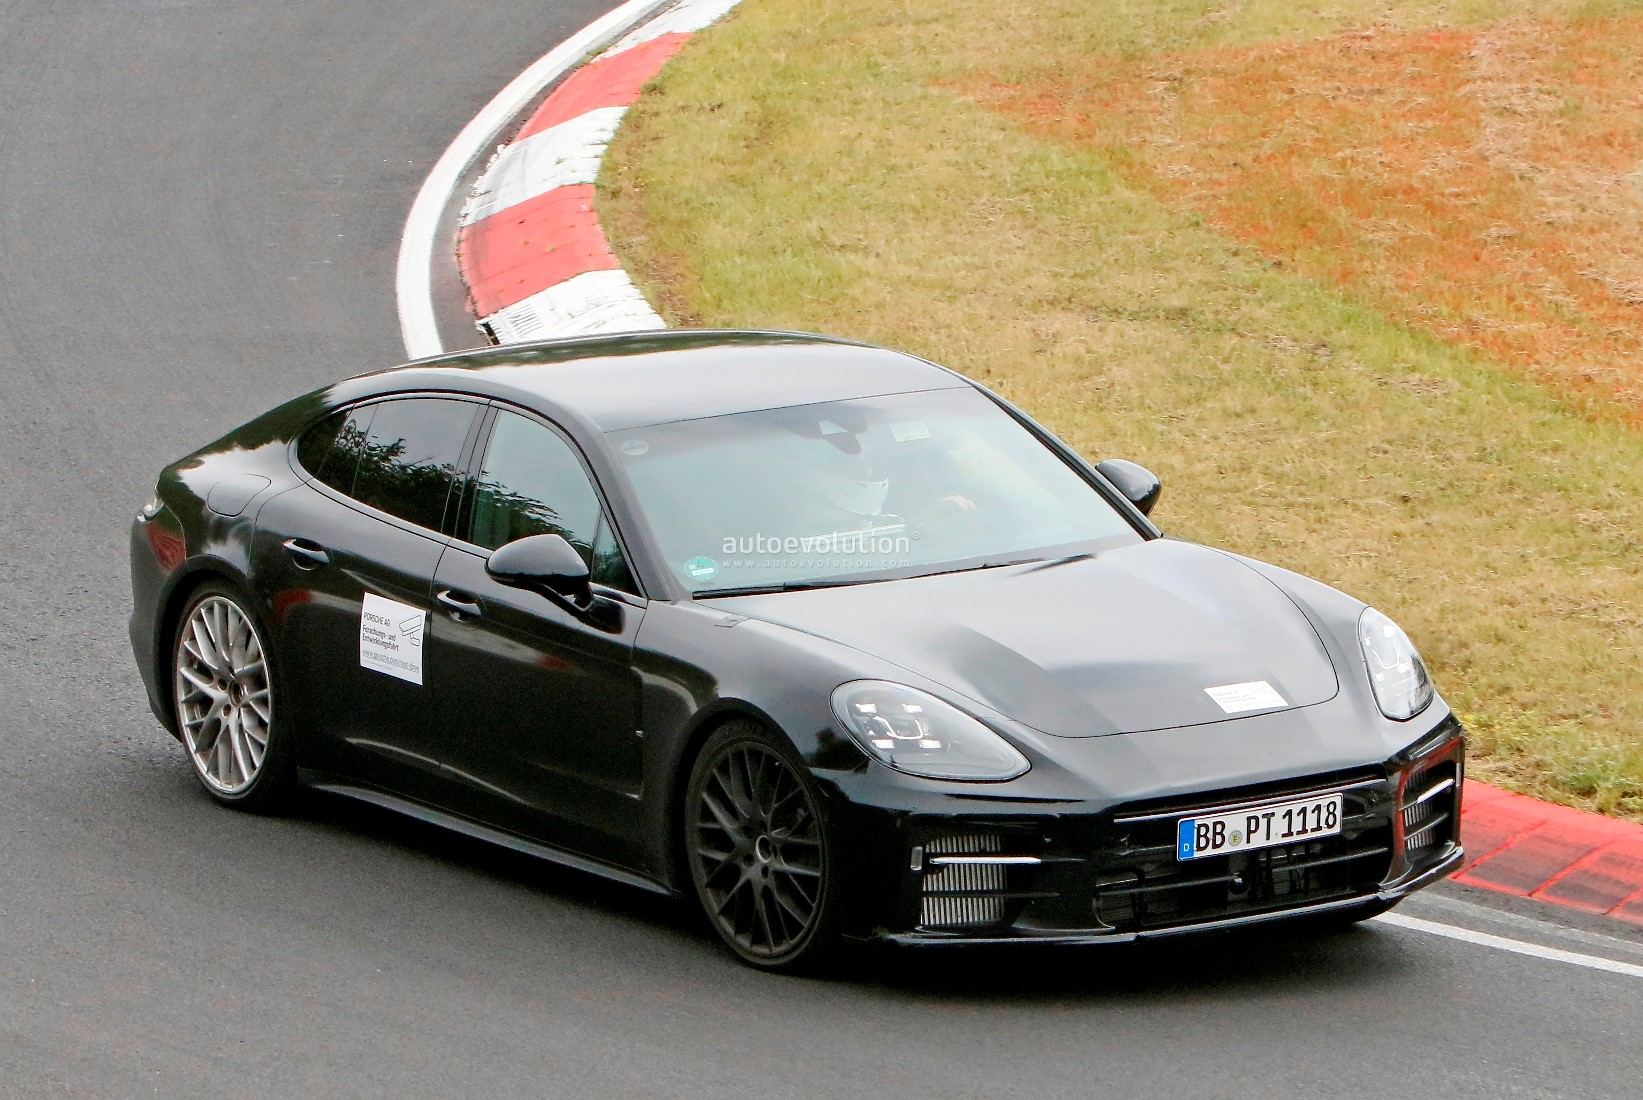 2023 Porsche Panamera Facelift Spied Flaunting Large Side Intakes